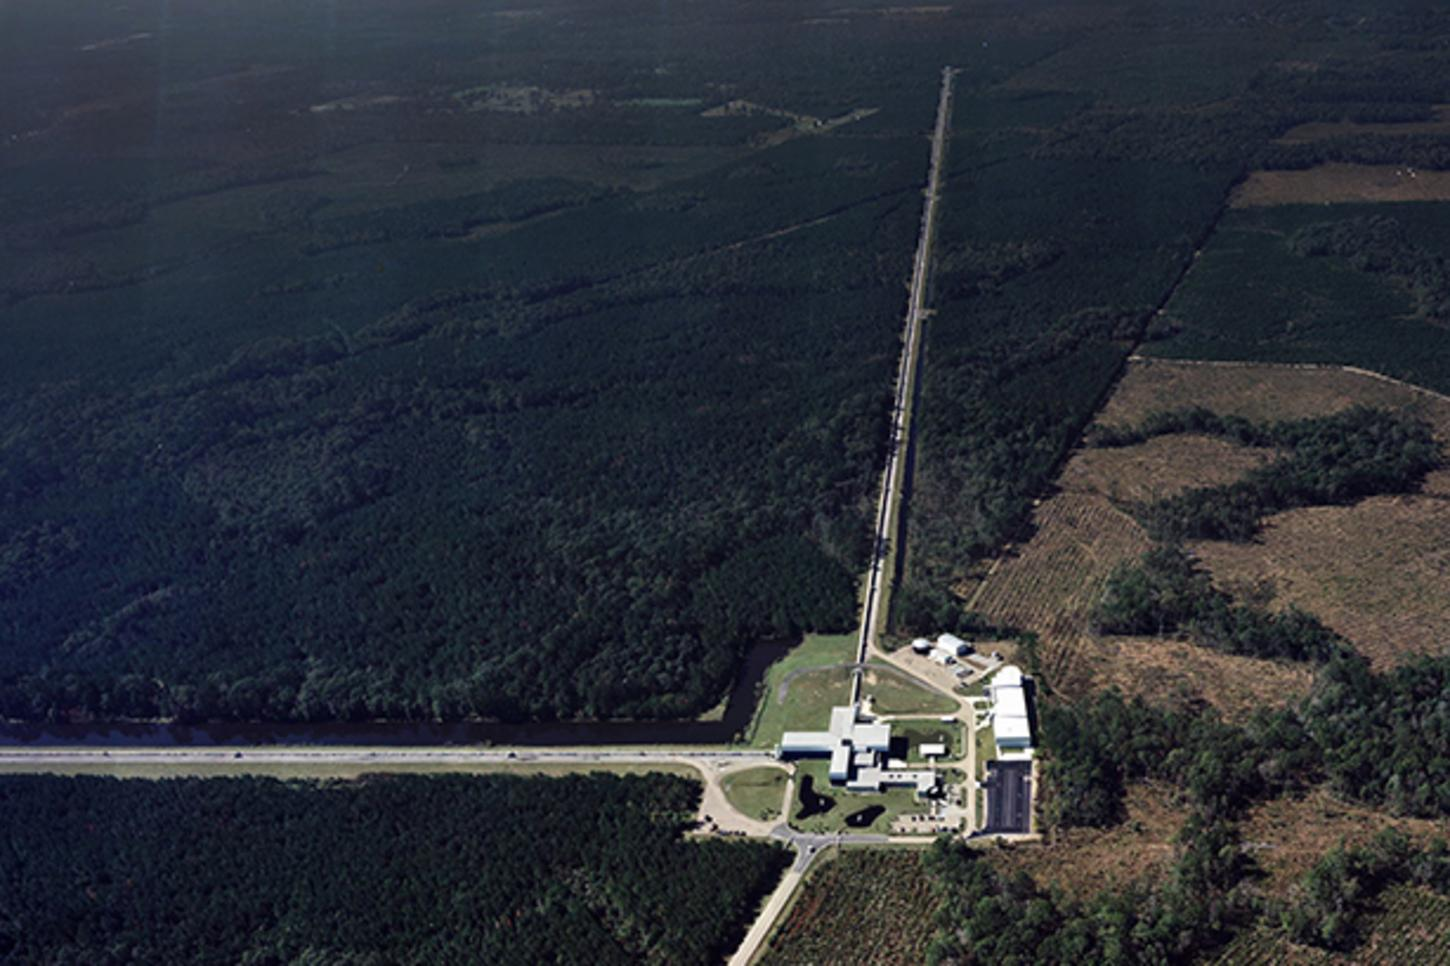 Aerial view of the LIGO gravitational wave detector in Livingston, Louisiana.